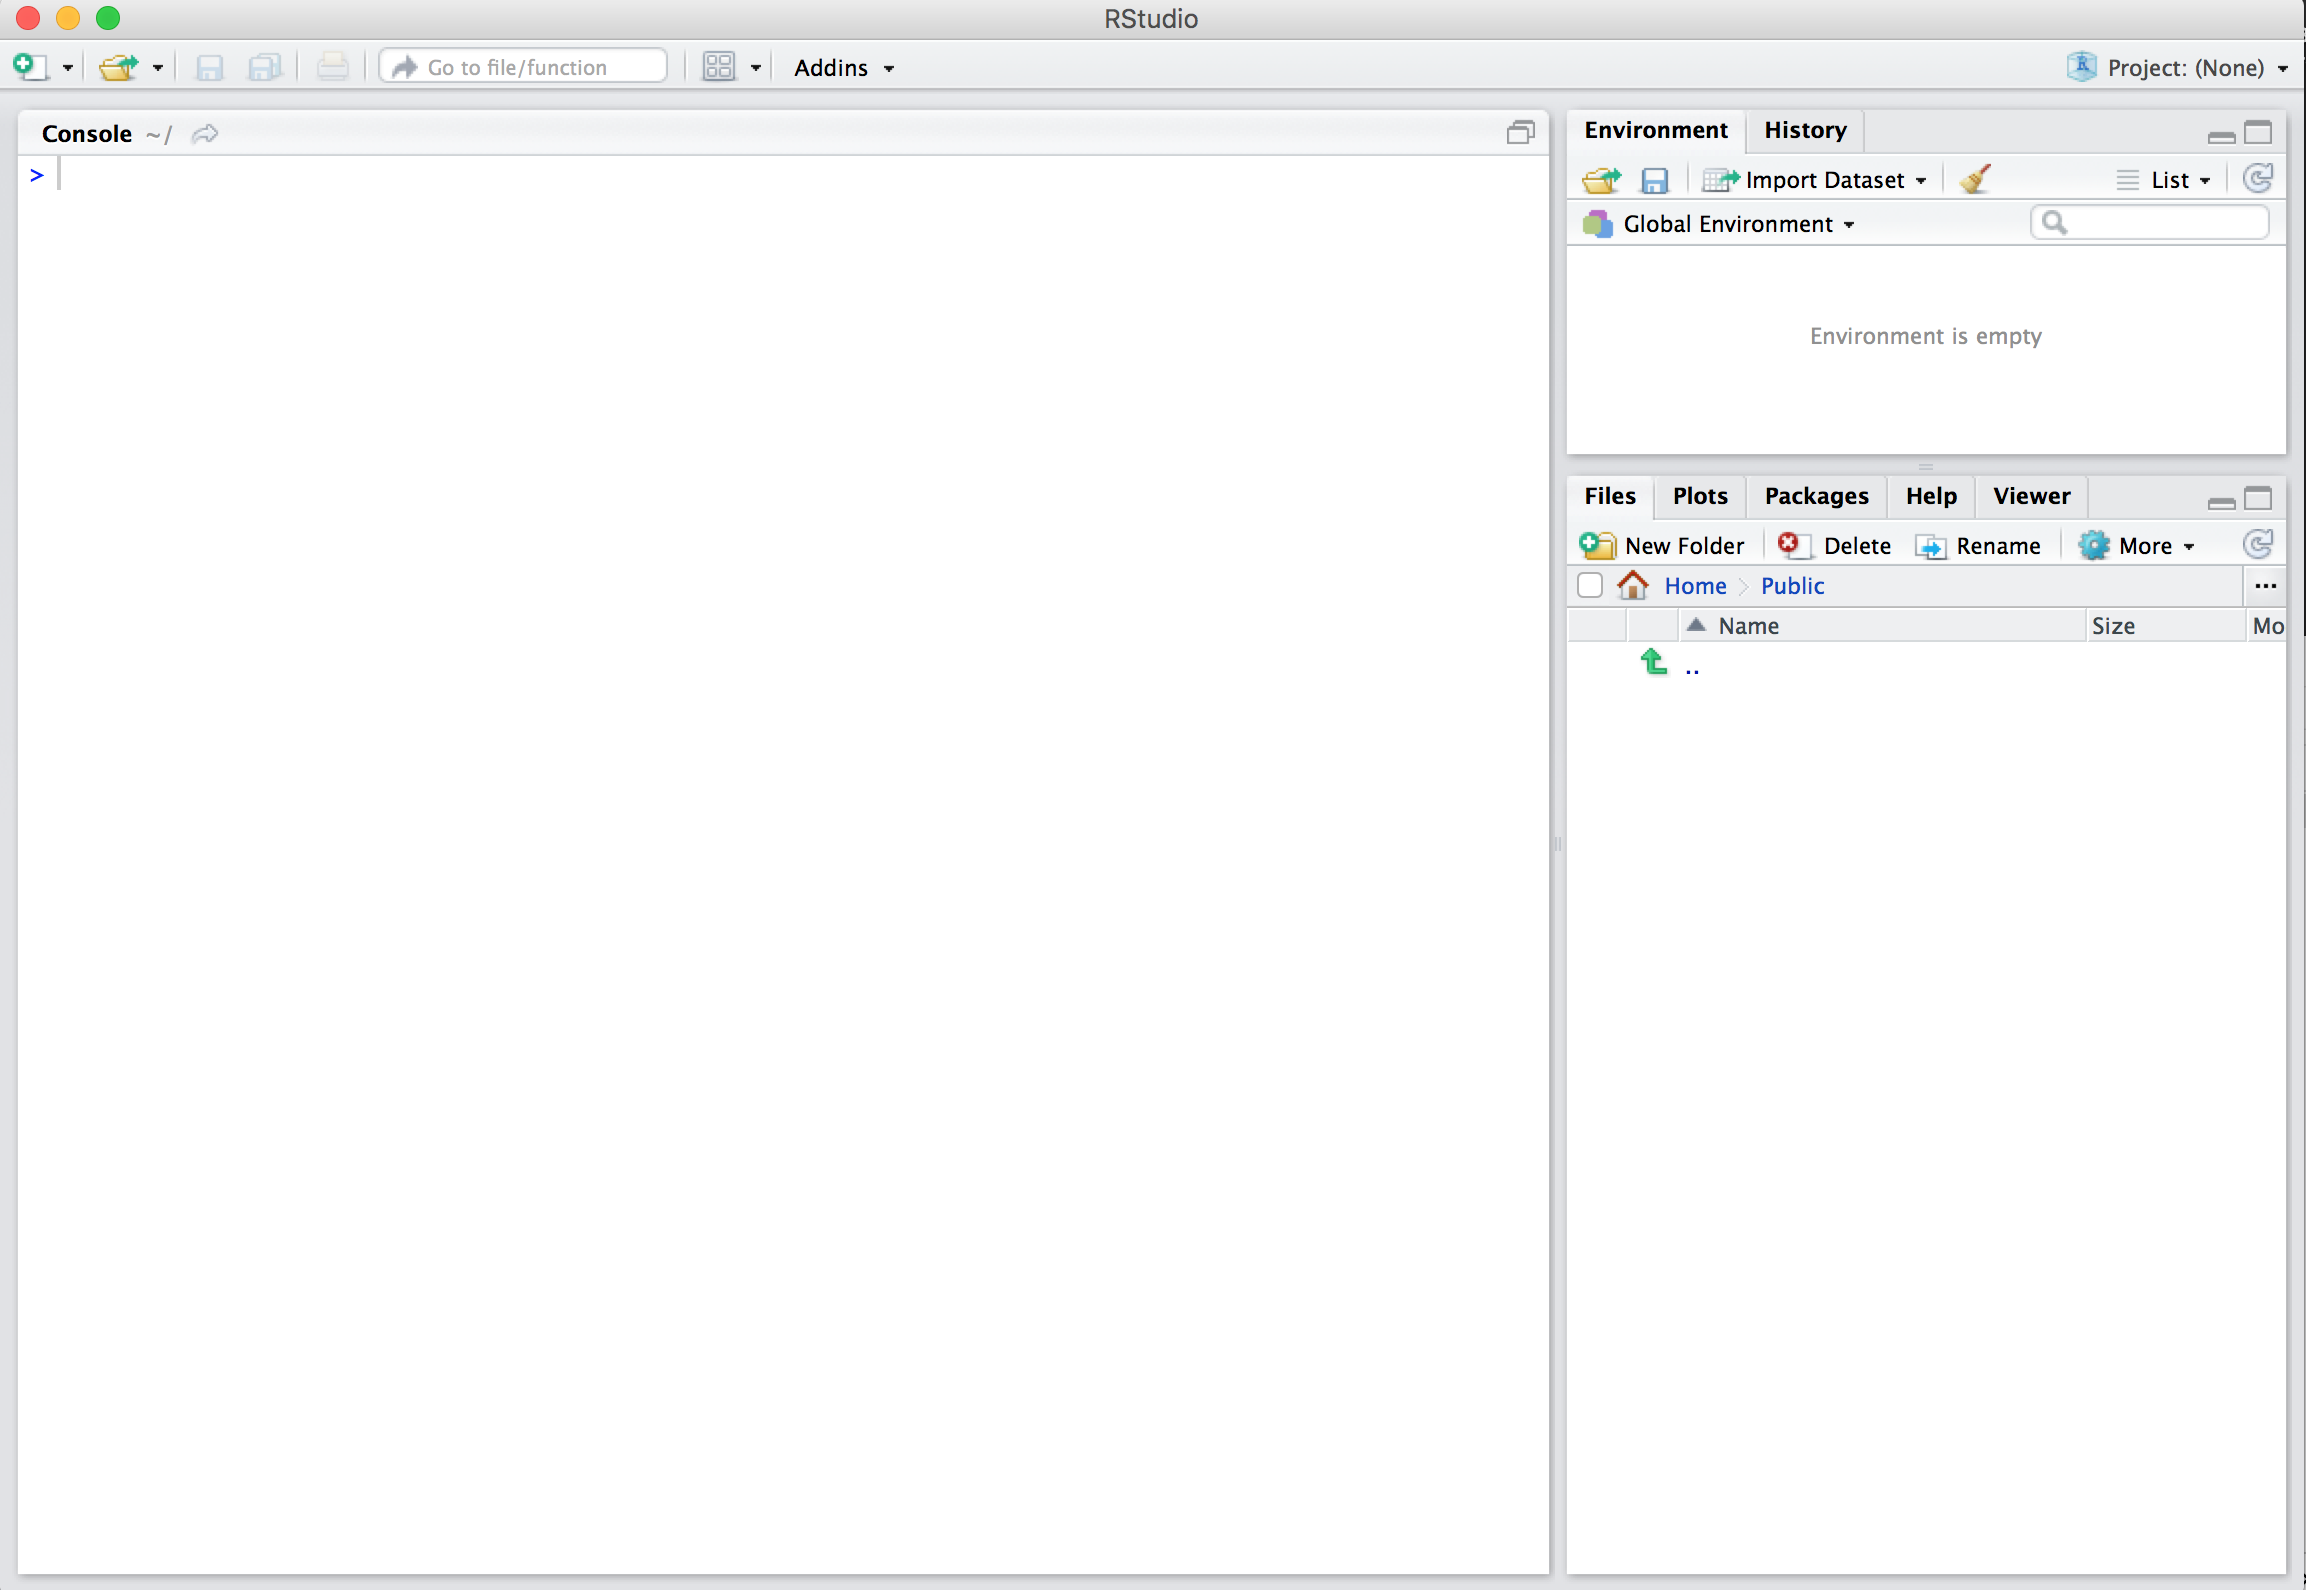 Initial page for RStudio Desktop